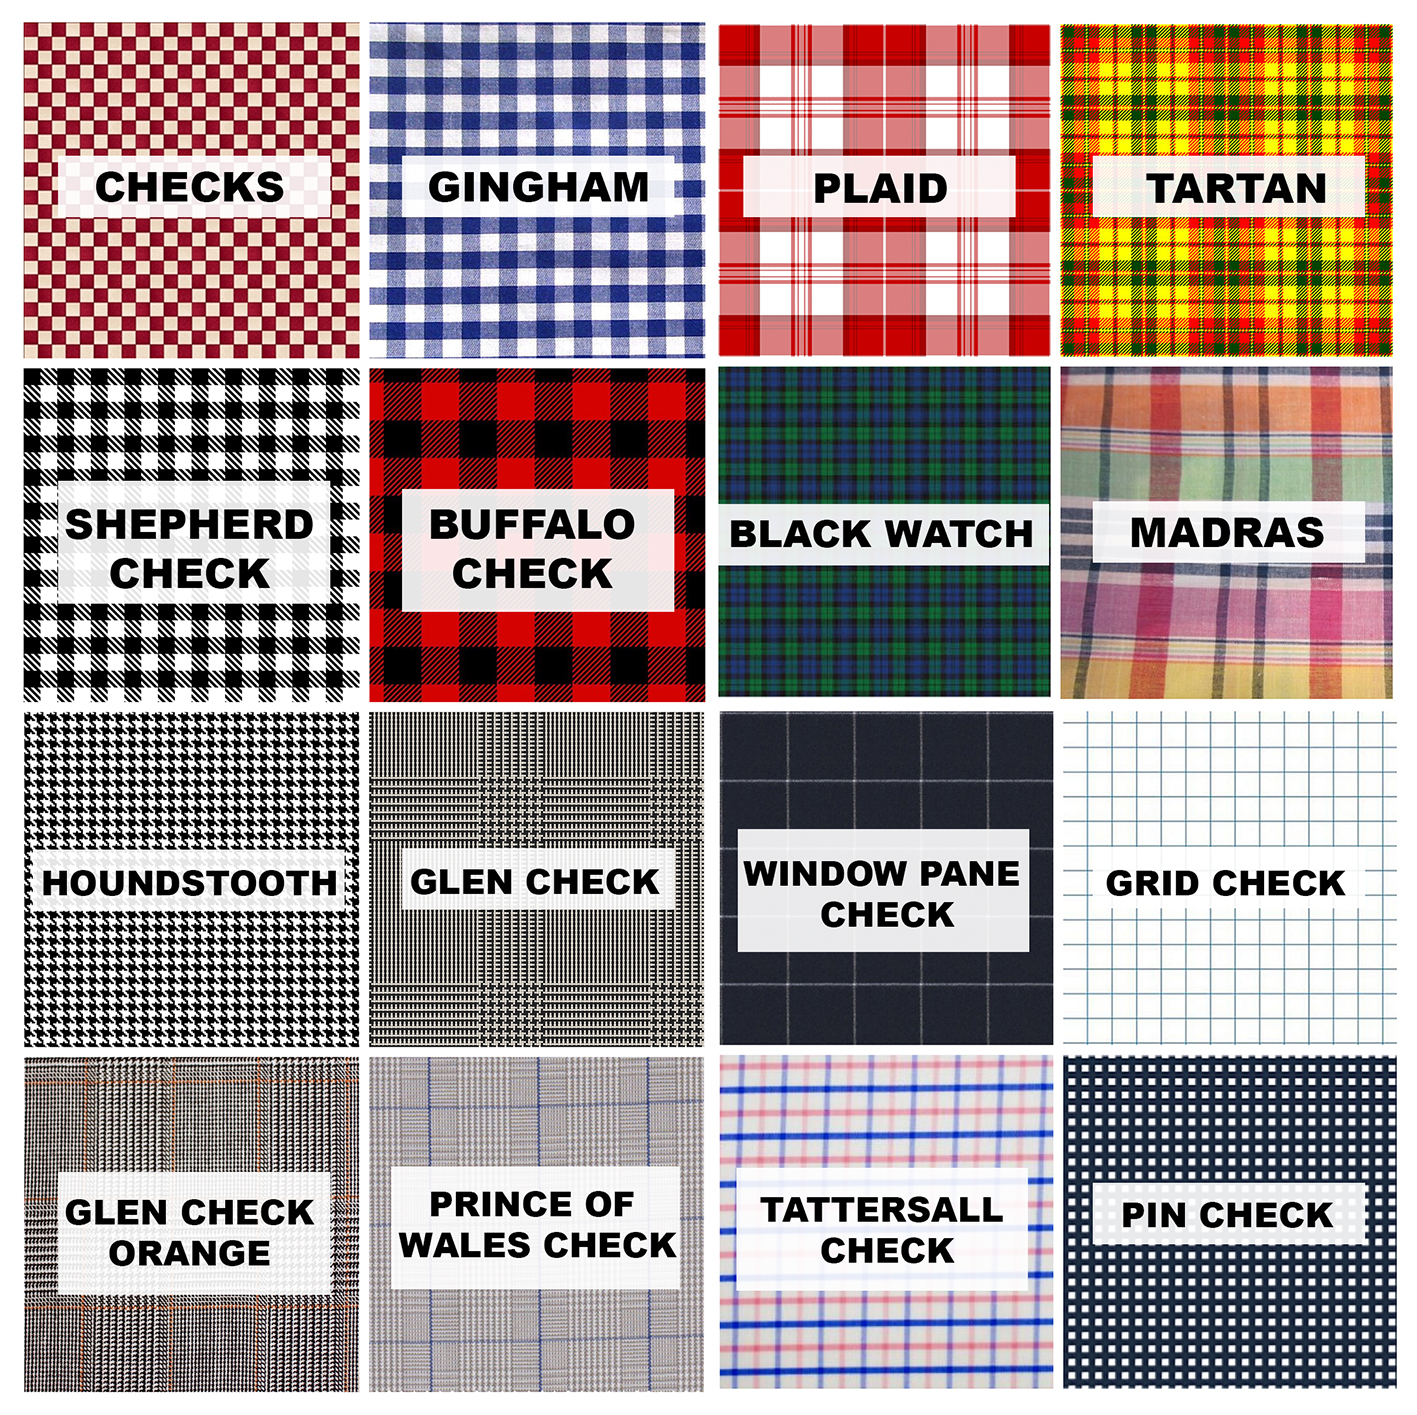 Gingham Vs Plaid Vs Tartan Tartan Vs Plaid Vs Gingham 28